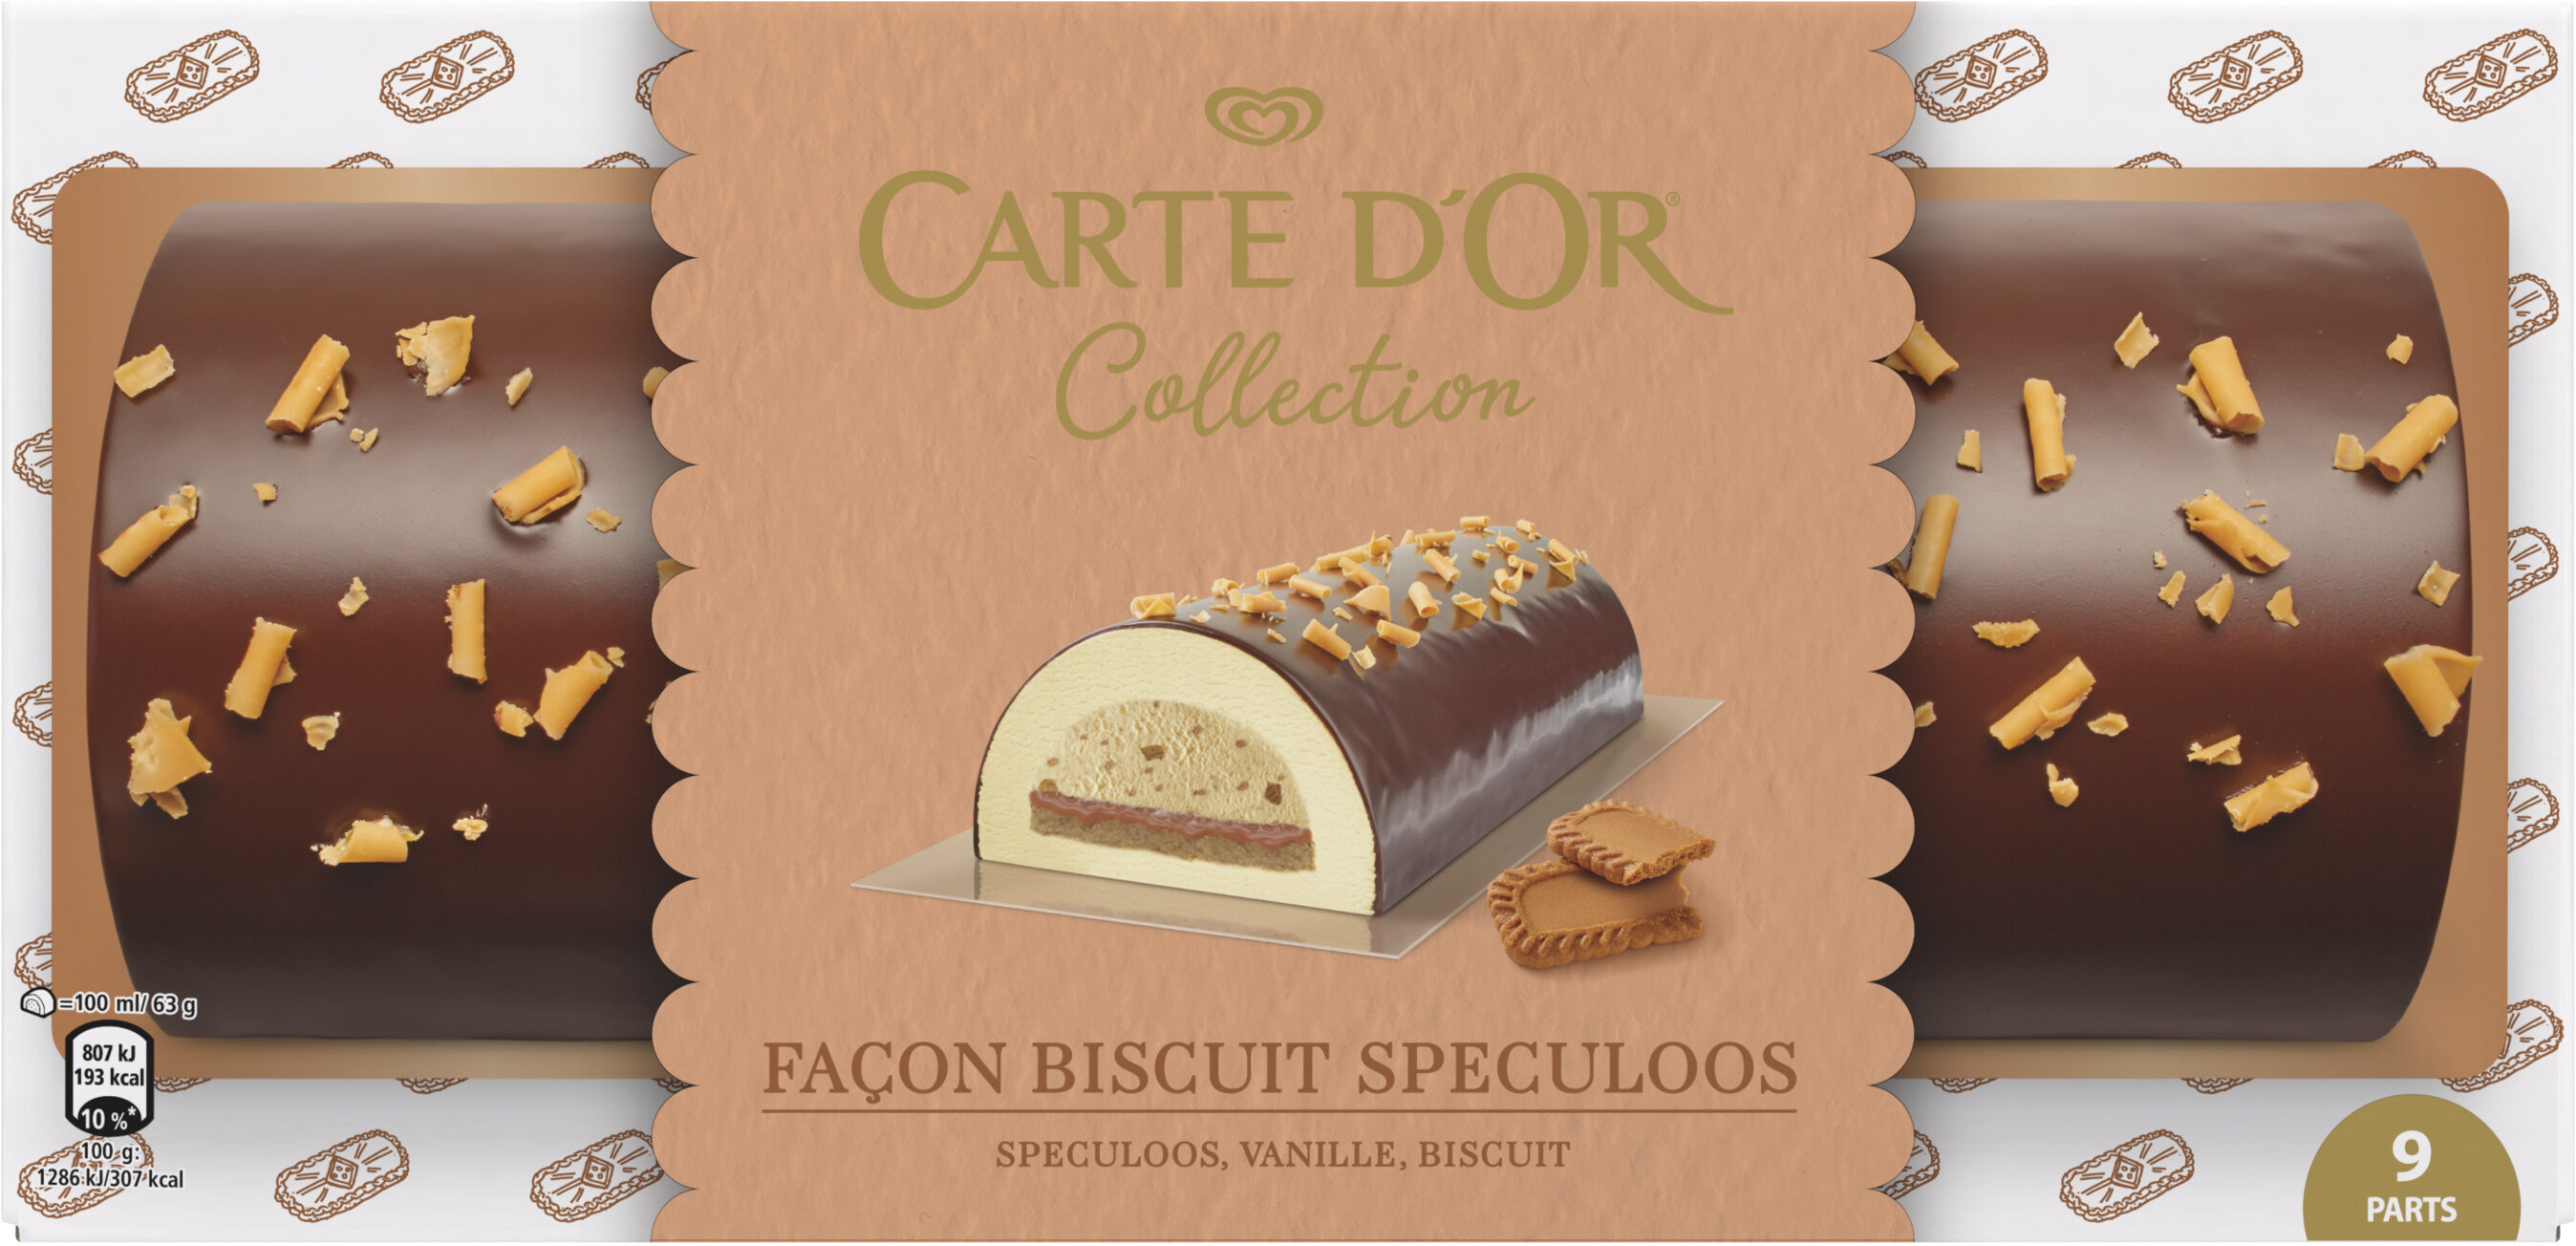 Carte D'or Buche Glacée Biscuit Speculoos 9 parts 900ml - Product